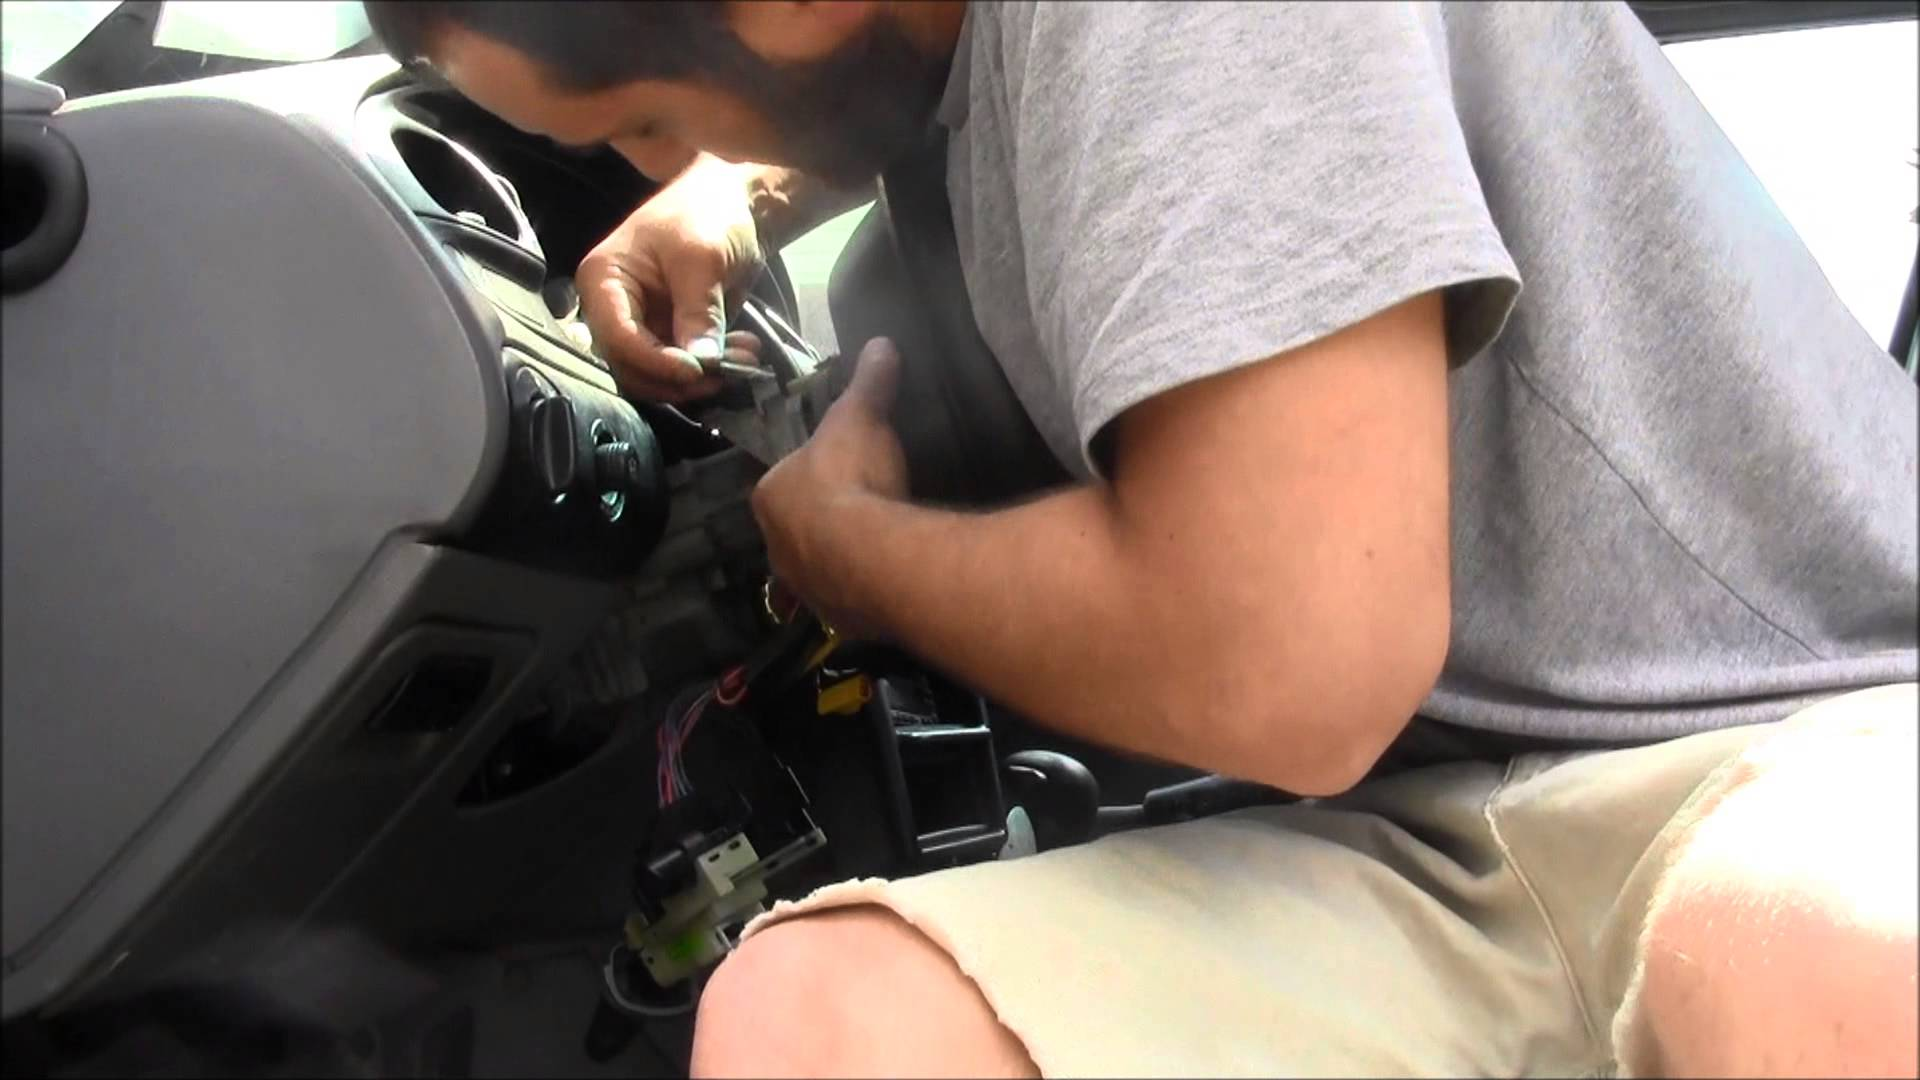 How to Replace an Airbag on a Vehicle